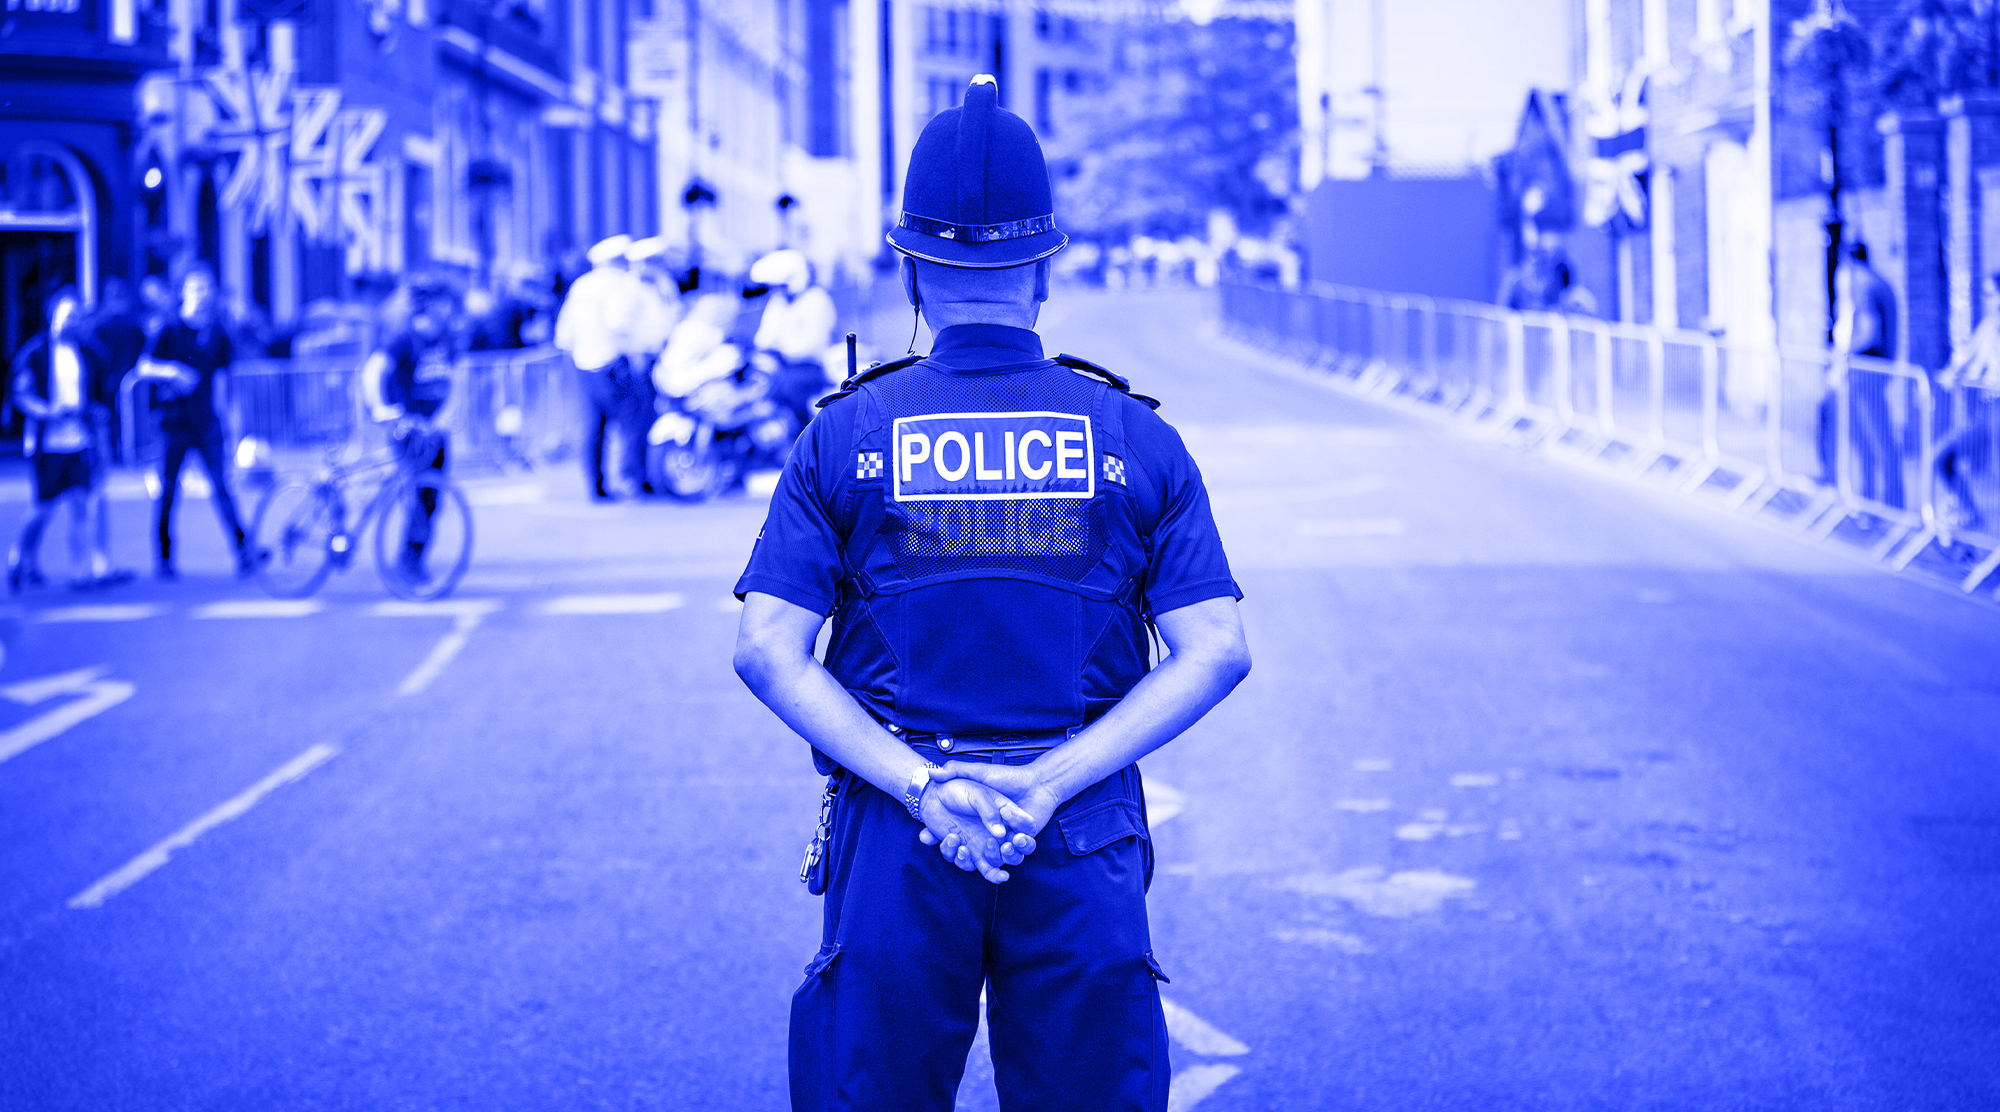 Double Check: Will More Police Help Tackle Violence Against Women?